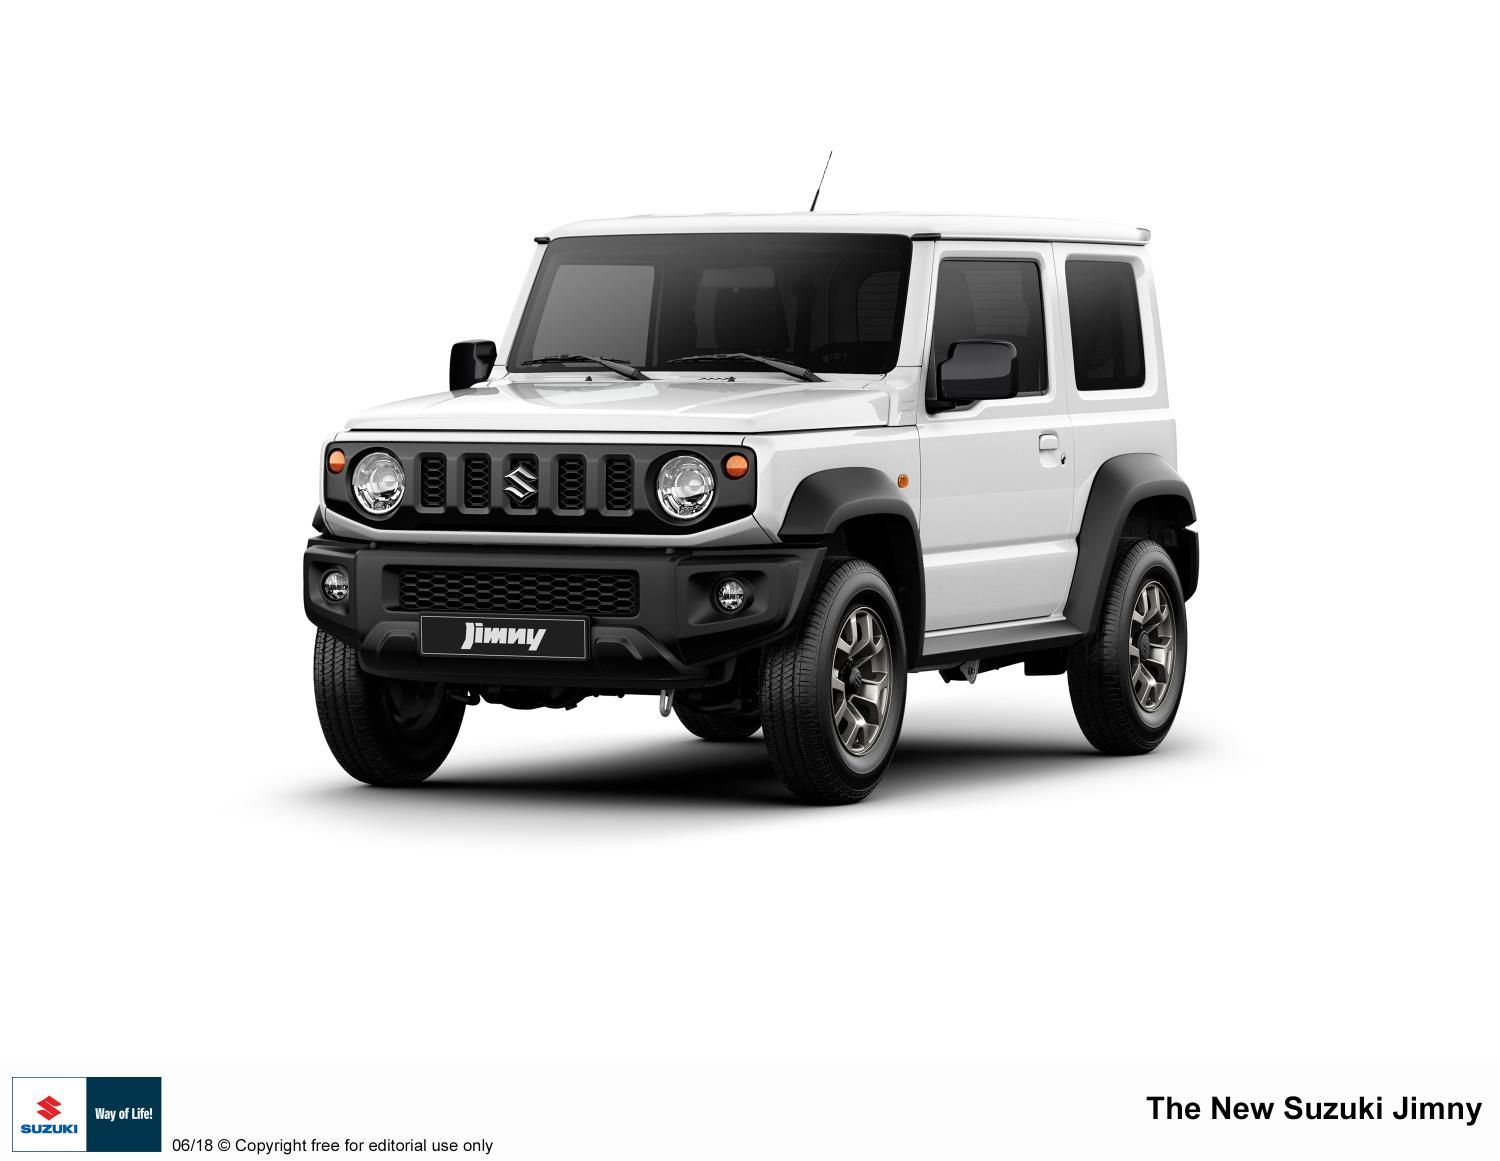 All-new Jimny – masterpiece of Suzuki's 4WD technology